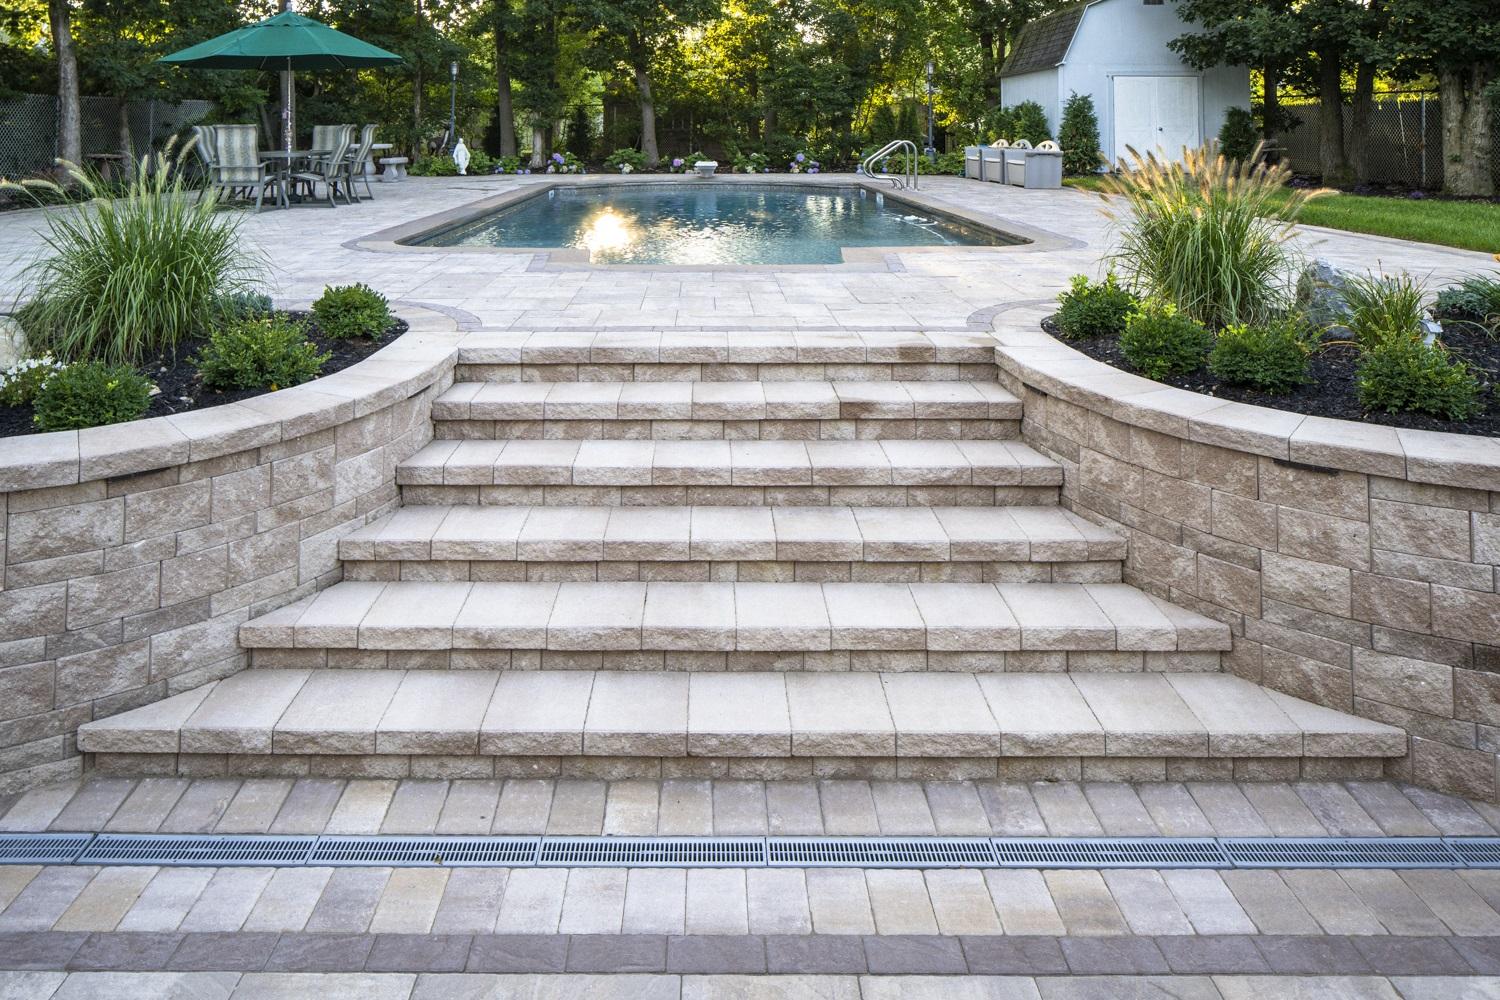 Landscape design with swimming pool in Melville NY